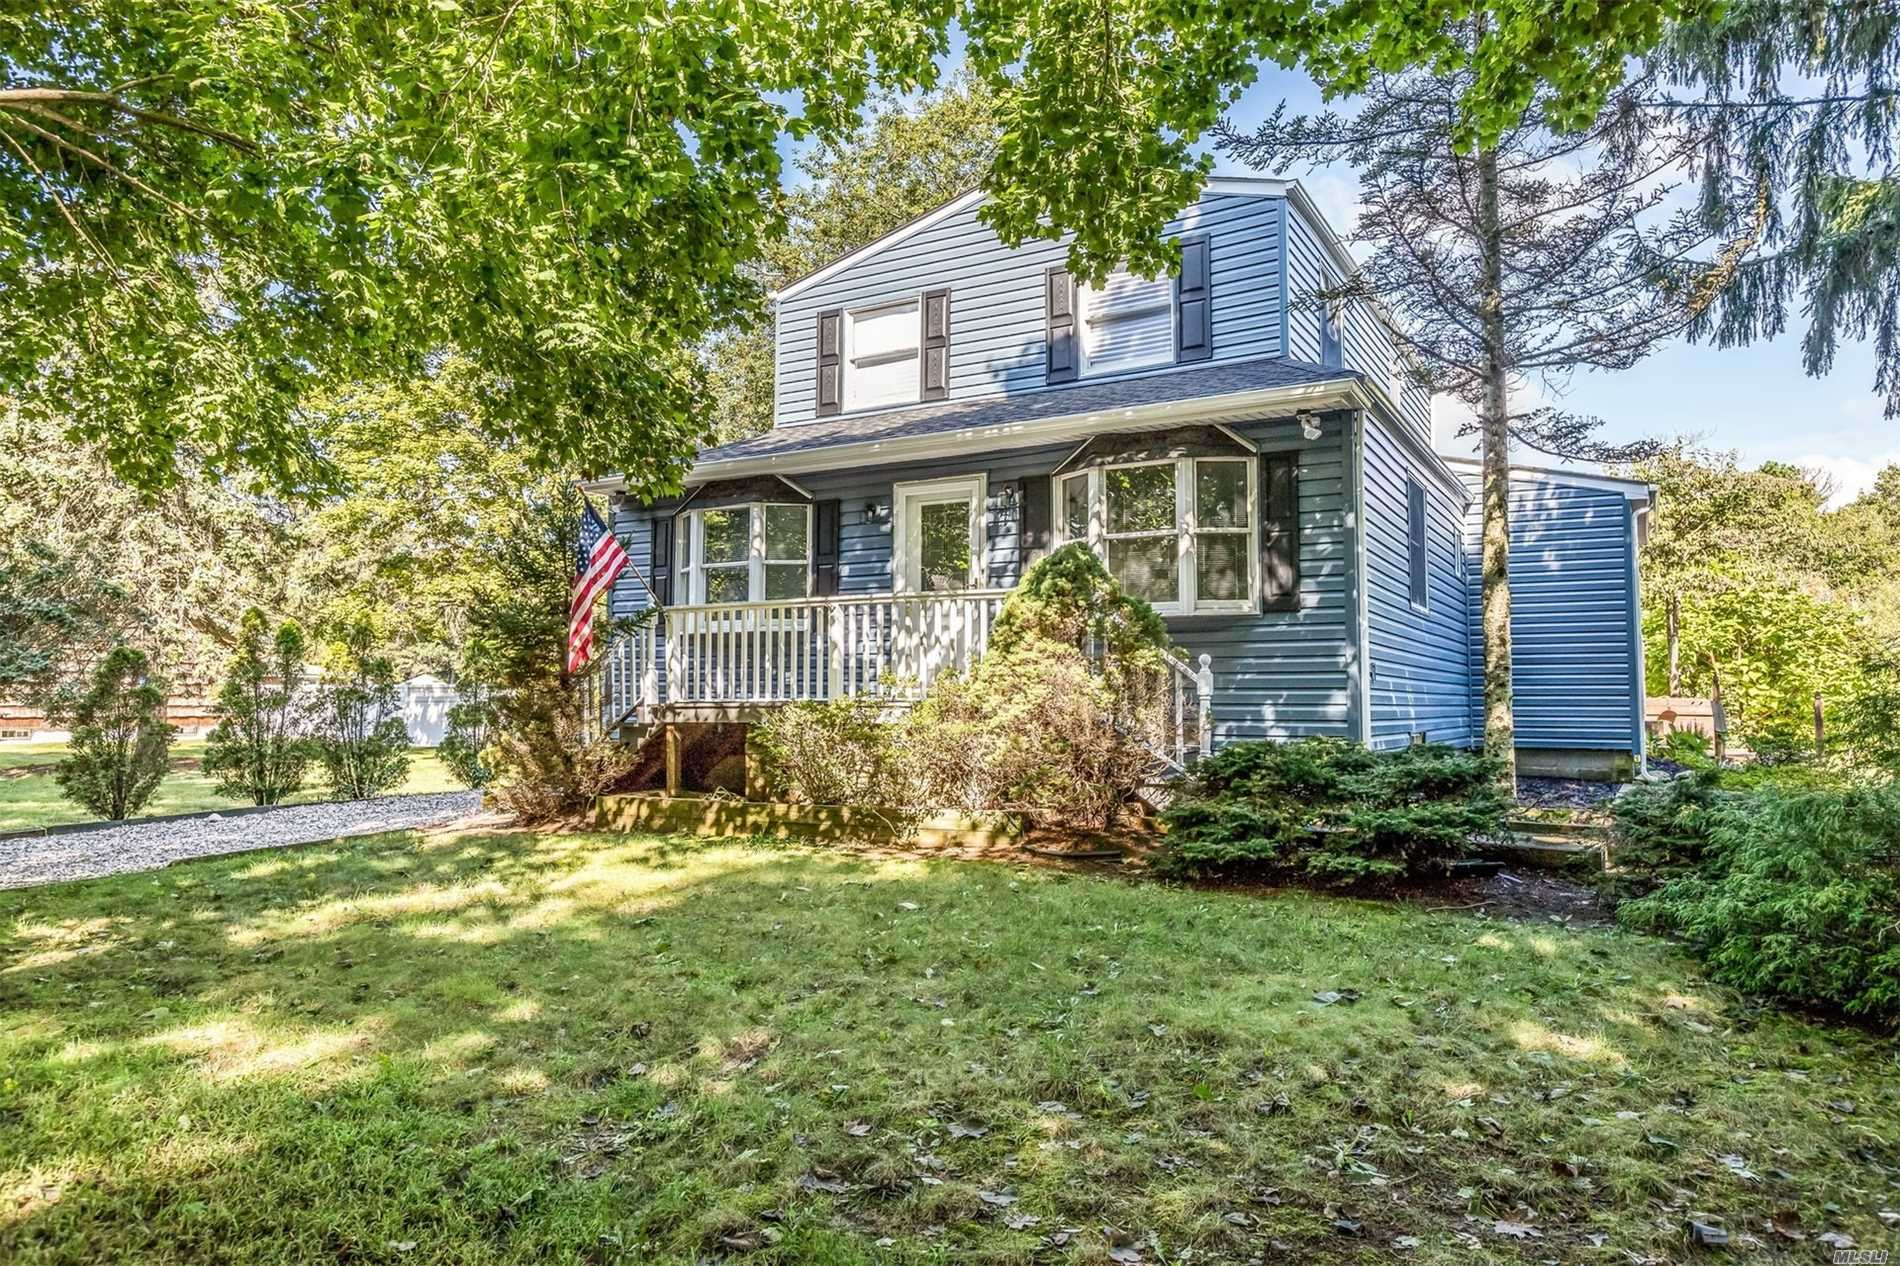 Completely Renovated 3 Bedroom 2 Full Bath Colonial Offers New Roof, Gourmet Kitchen With Granite & Stainless Steel Appliances, Huge 30X15 Family Room, New Siding, New Baths, Detached Garage & Basement. All Nestled On 85X300 Lot.